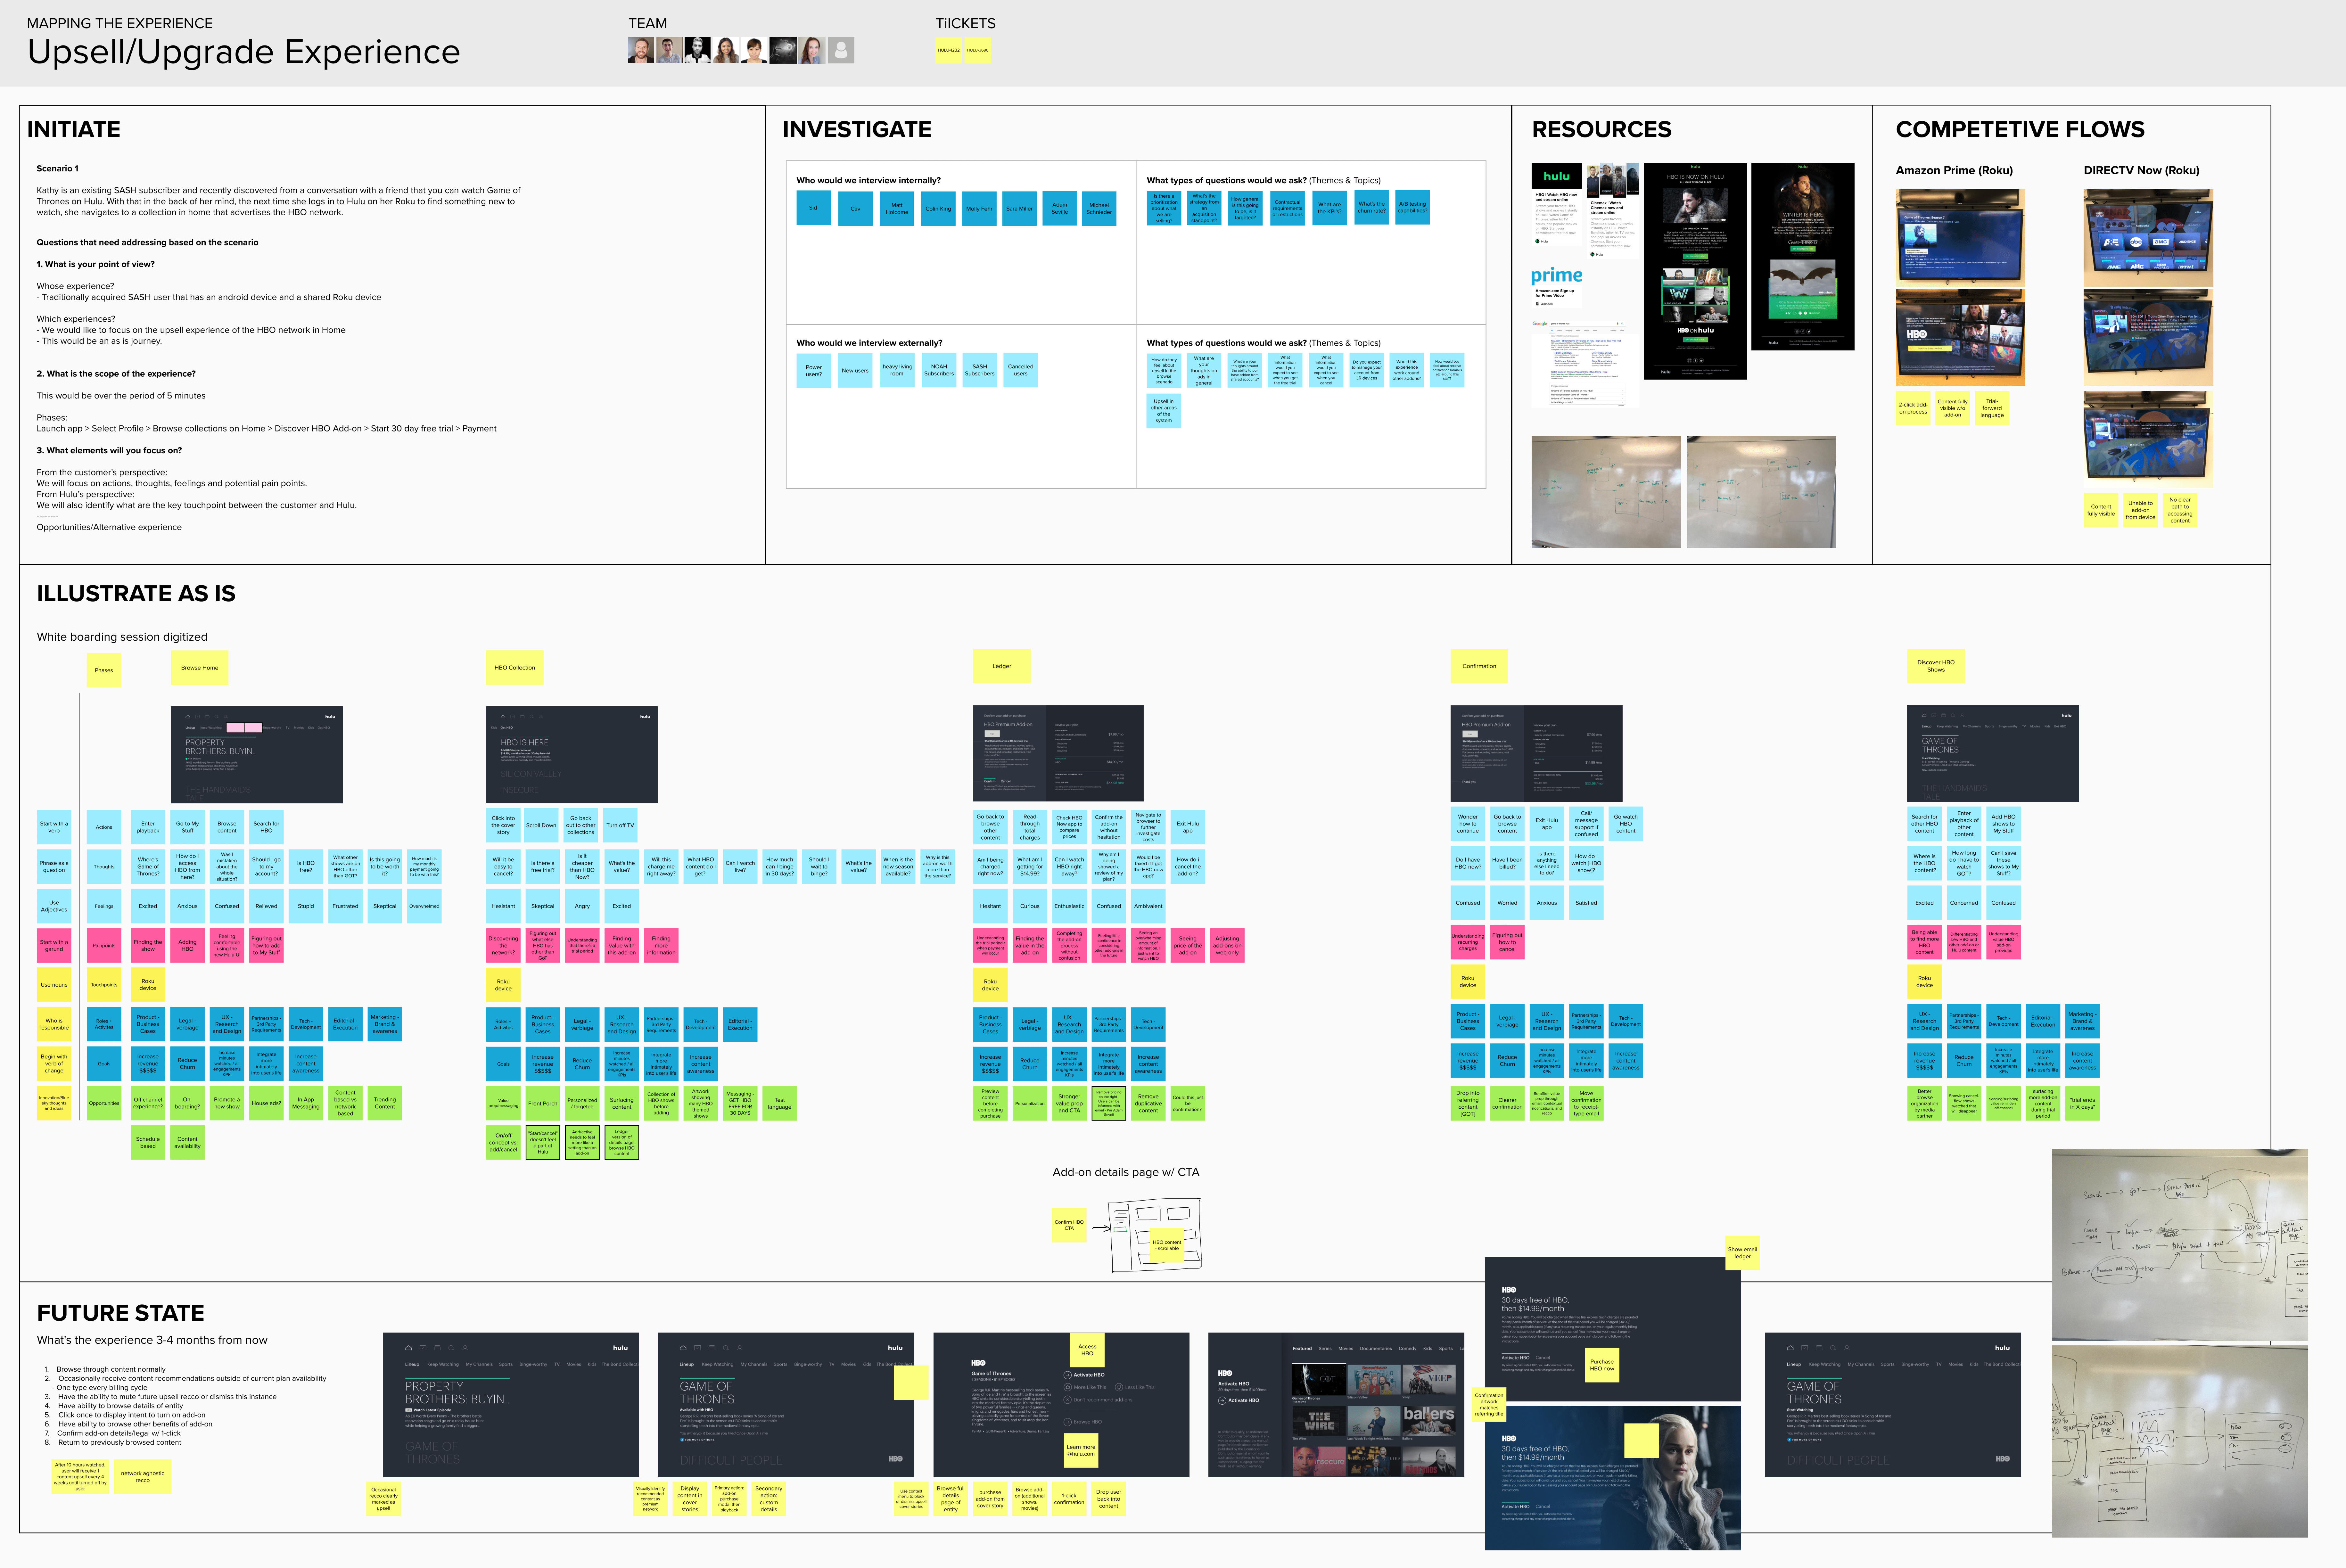 digital whiteboard with mapping exercise full of sticky notes and screenshots